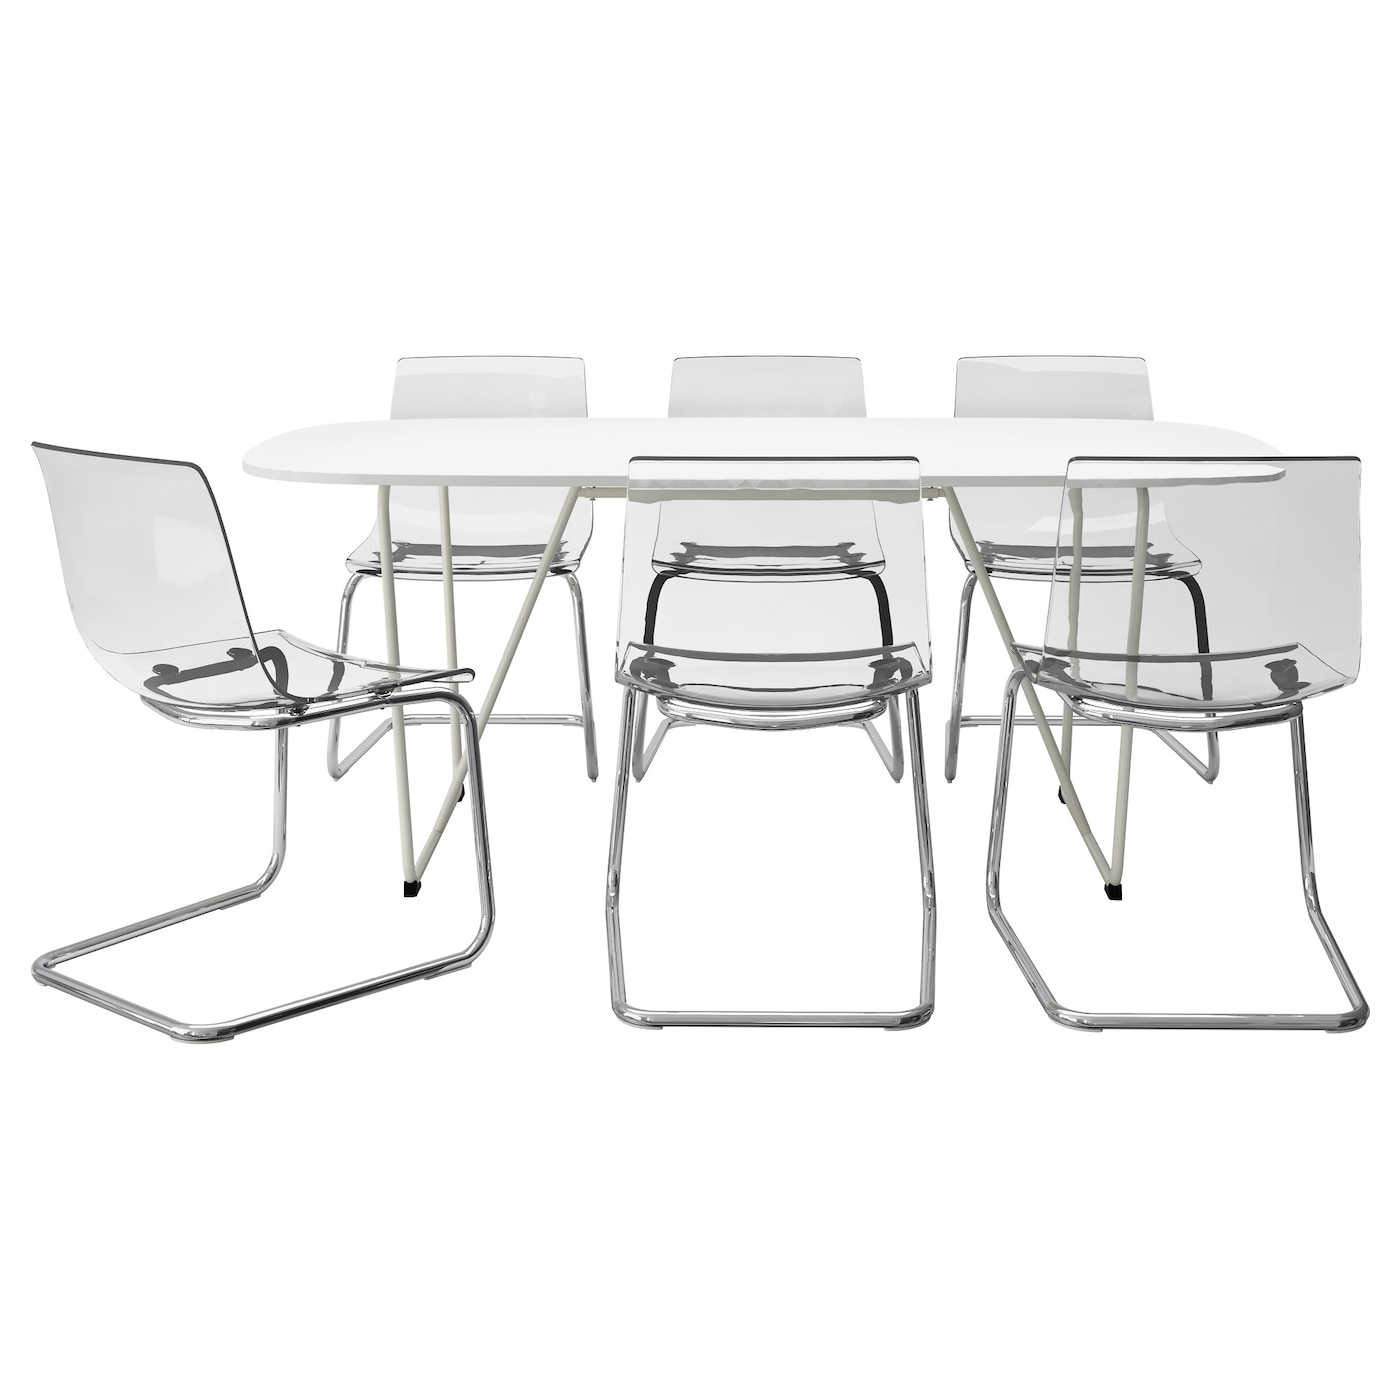 Oppeby backaryd tobias table and 6 chairs white chrome for High table and chairs ikea